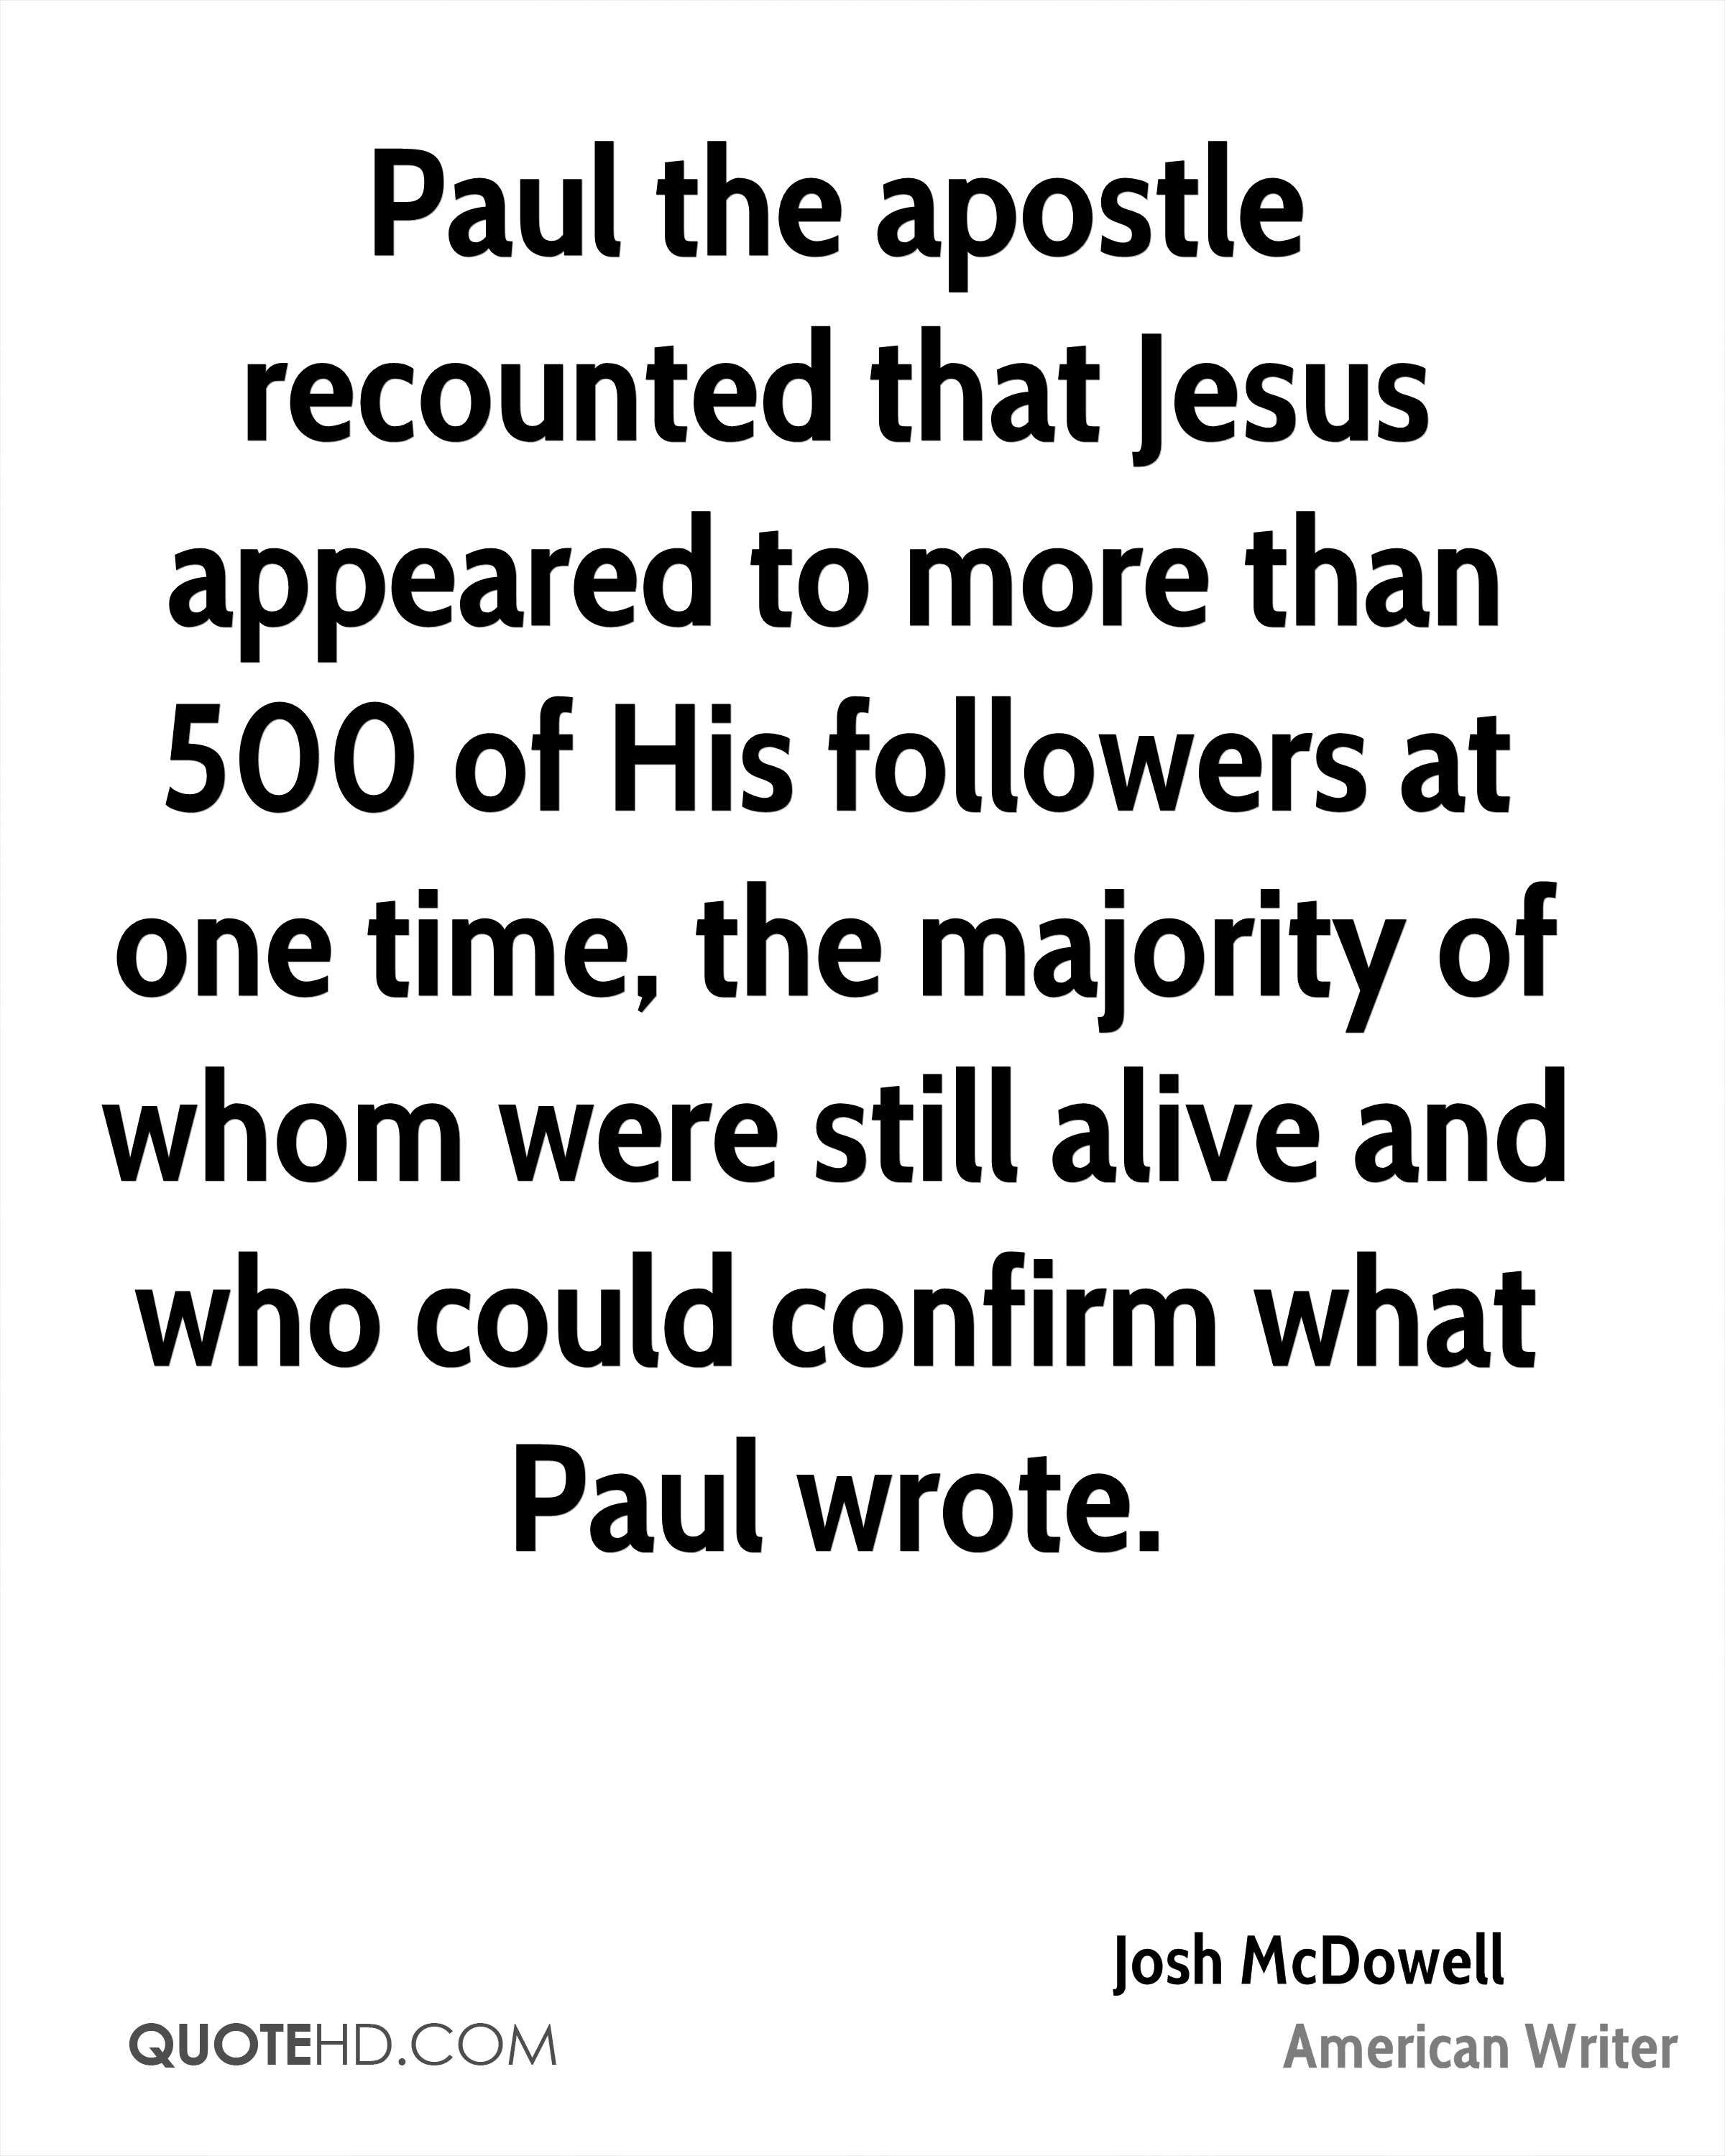 Paul the apostle recounted that Jesus appeared to more than 500 of His followers at one time, the majority of whom were still alive and who could confirm what Paul wrote.